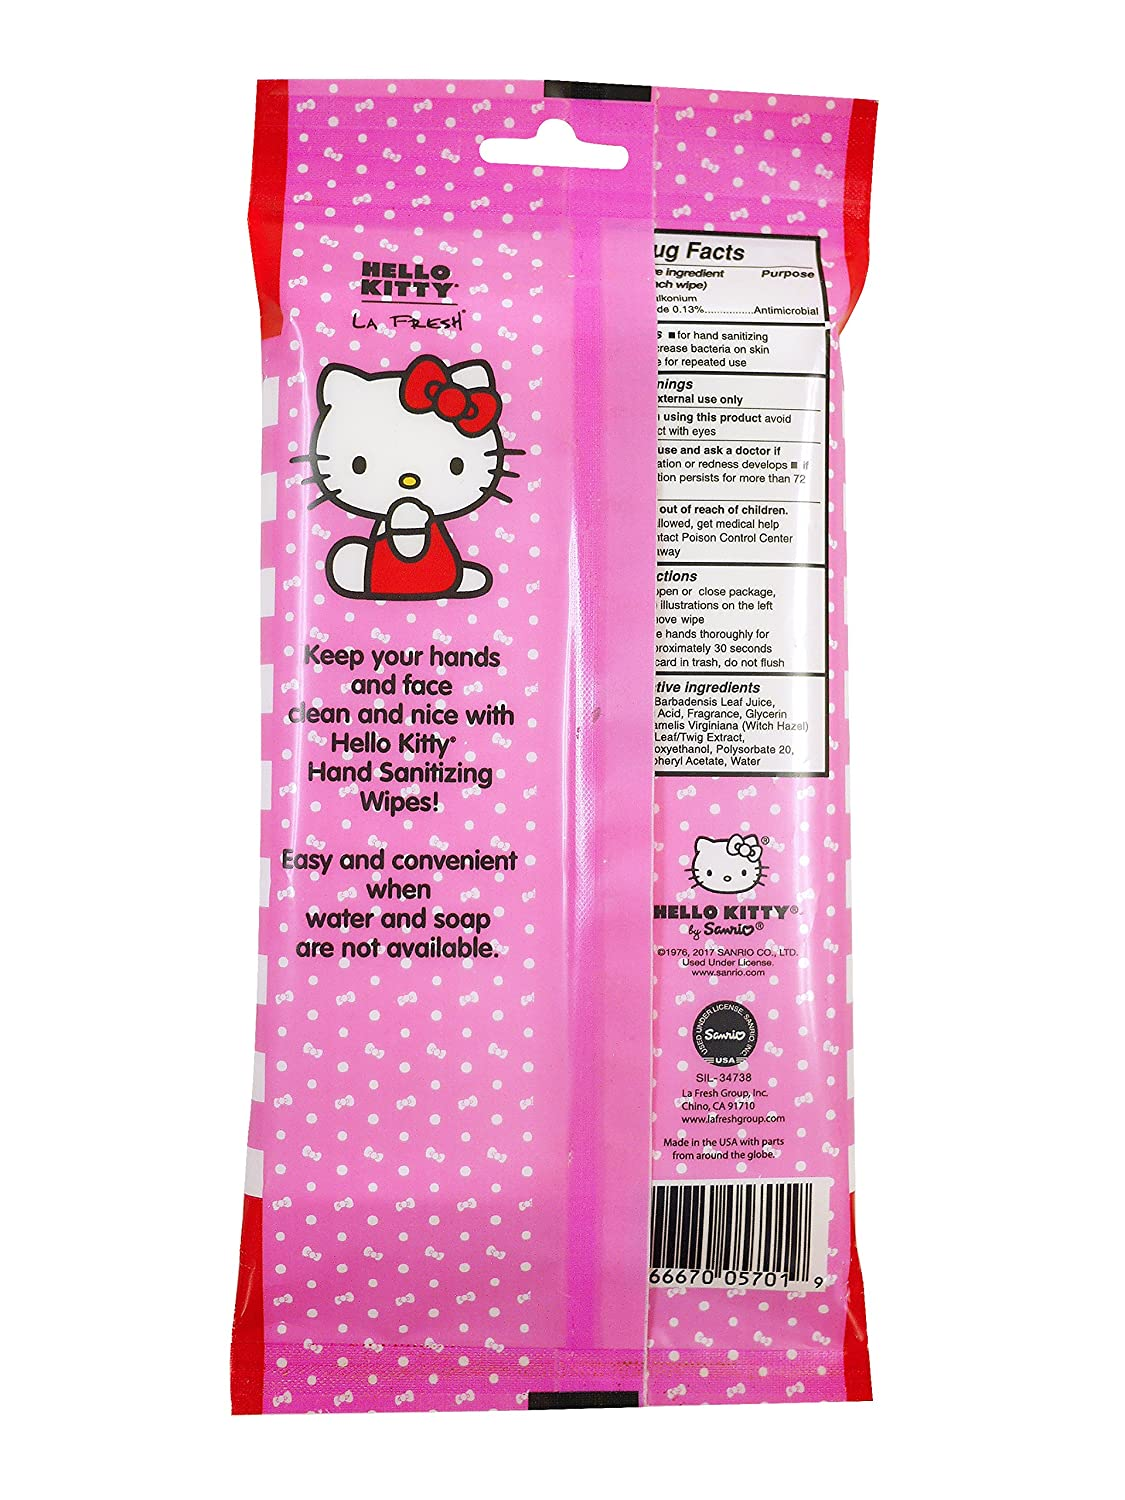 Amazon.com : Disposable Hand Sanitizing Travel Wipes: Hello Kitty Fresh Cleansing Sanitizer Wipe for Hands or Face with Aloe - 30 Count, Pack of 6 (total ...